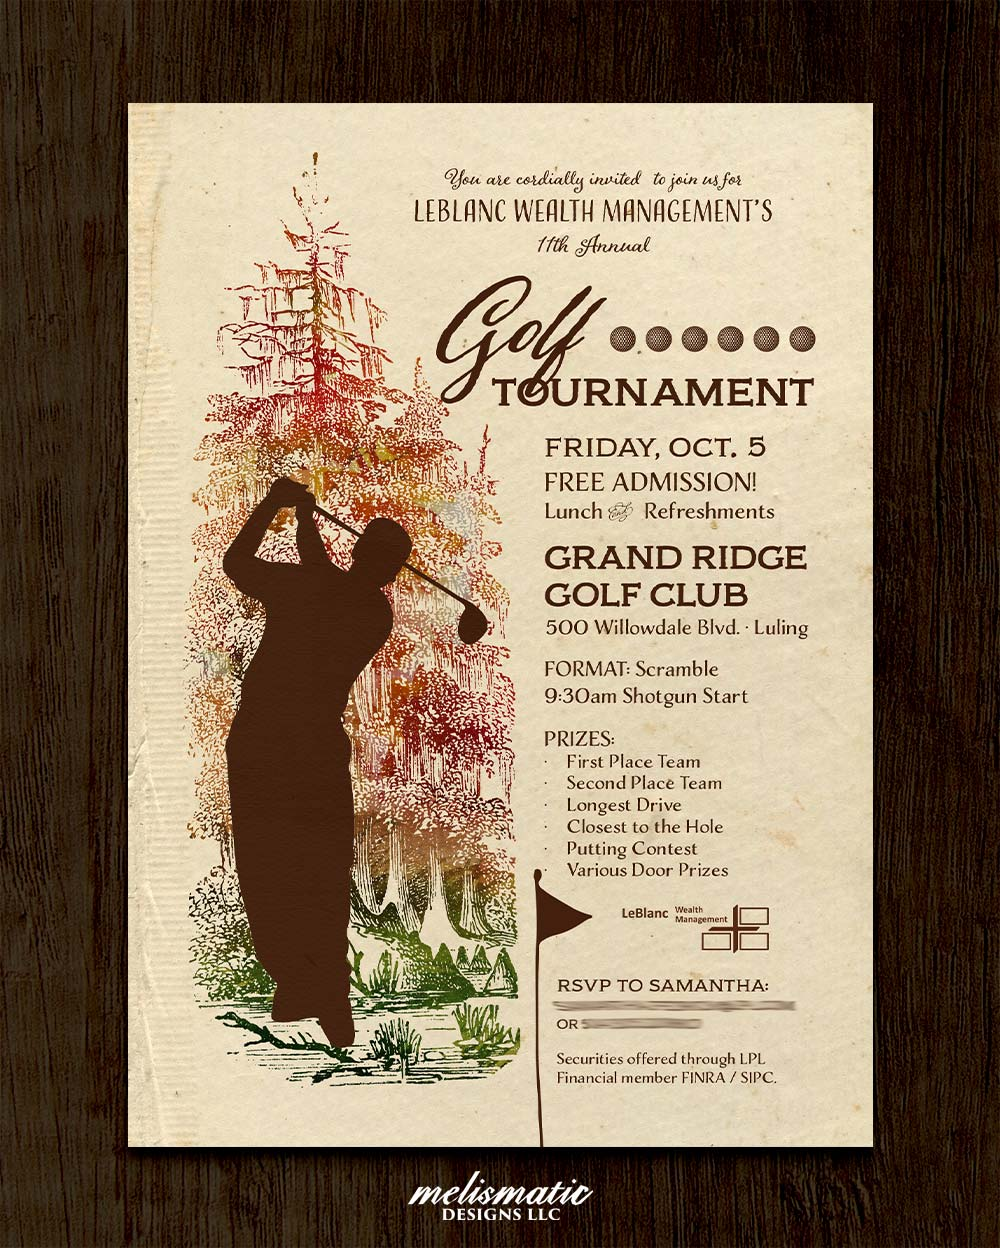 LeBlanc Wealth Management Golf Tournament Invitation Design